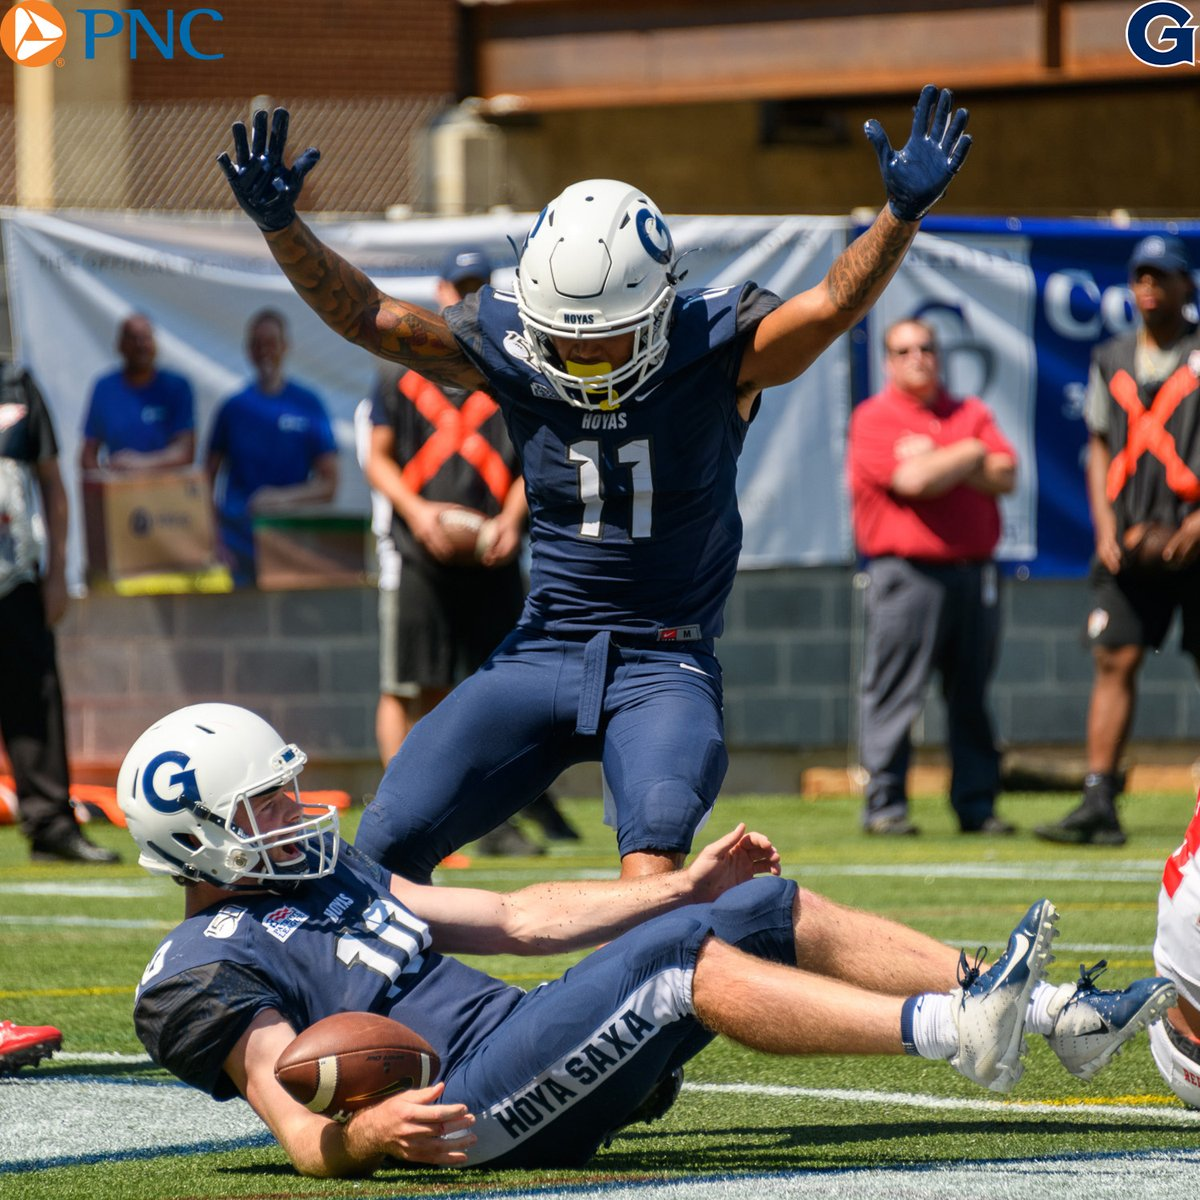 Photos of the Year presented by @PNCBank #HOYASAXA